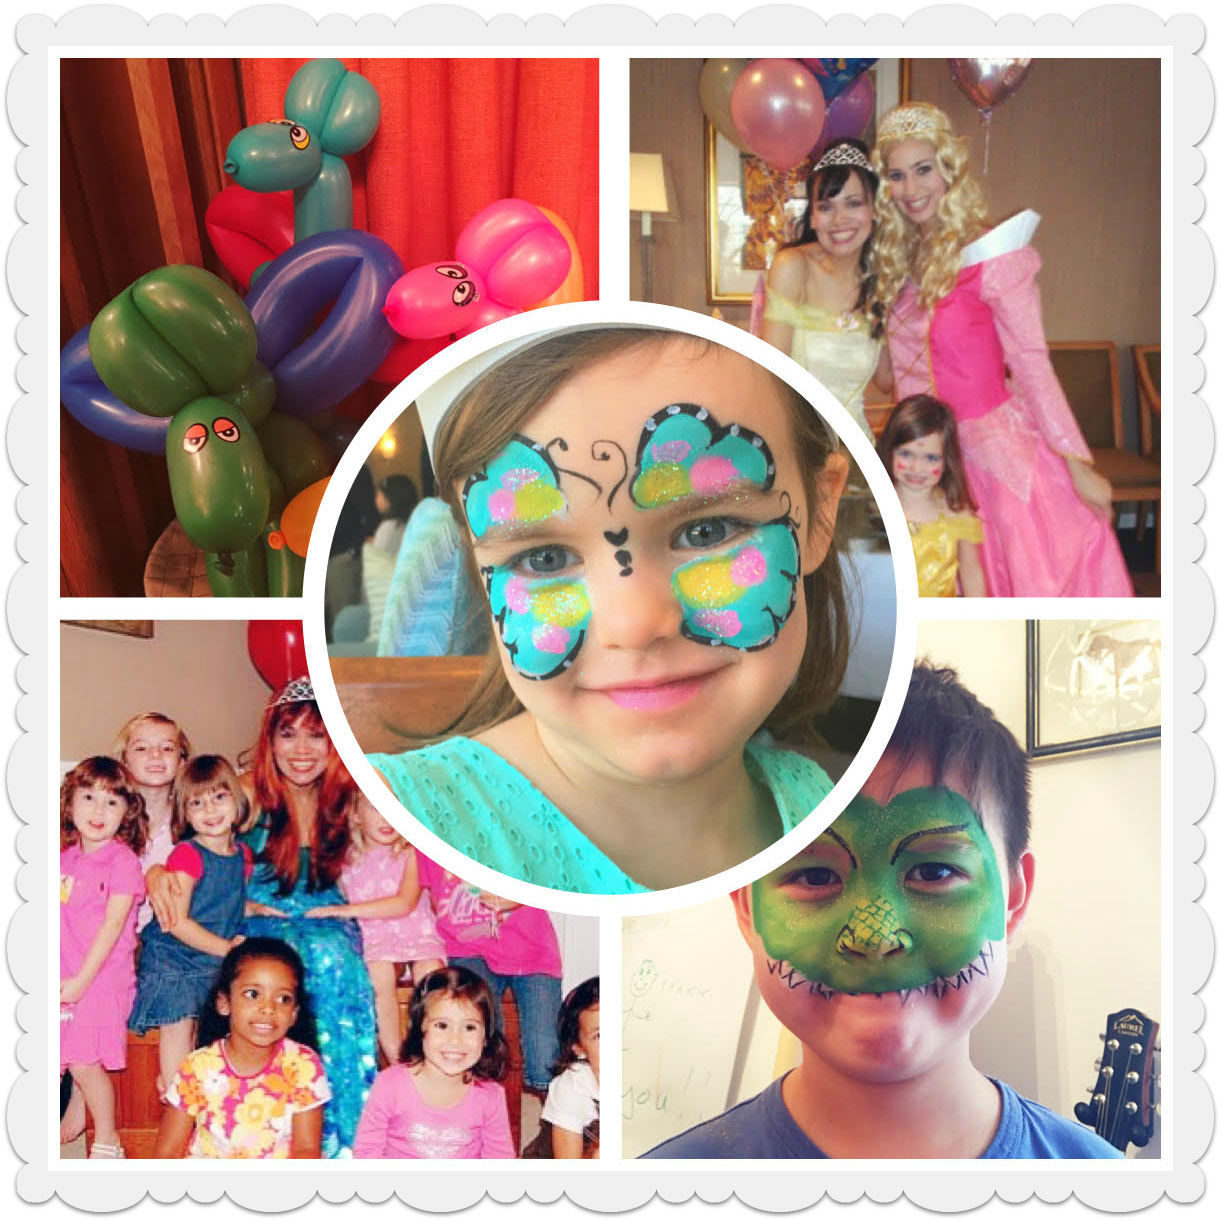 childrens party entertainment face painting, balloon art, princesses clown kids balloon twister birthday entertainer Ariel, Little Mermaid, Belle, Elsa, Anne, Sleeping Beauty NYC Manhattan UES FiDi Harlem Midtown West Times Square Hudson Yards Upper West Side Upper East Side Tribeca Chelsea Midtown LIC Soho parties and events